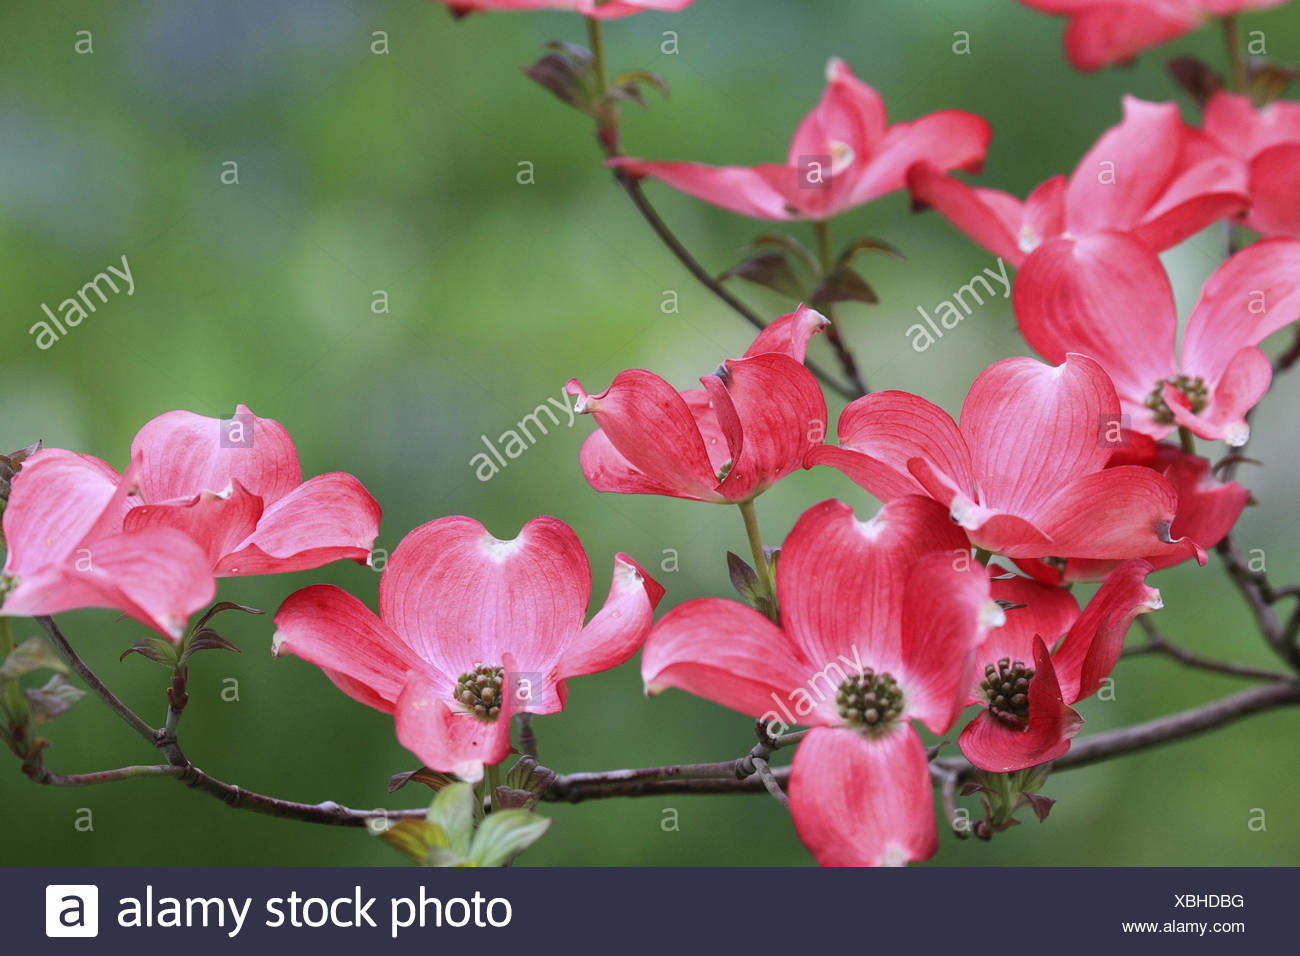 Pink Flowers Of Flowering Dogwood Stock Photos Pink Flowers Of